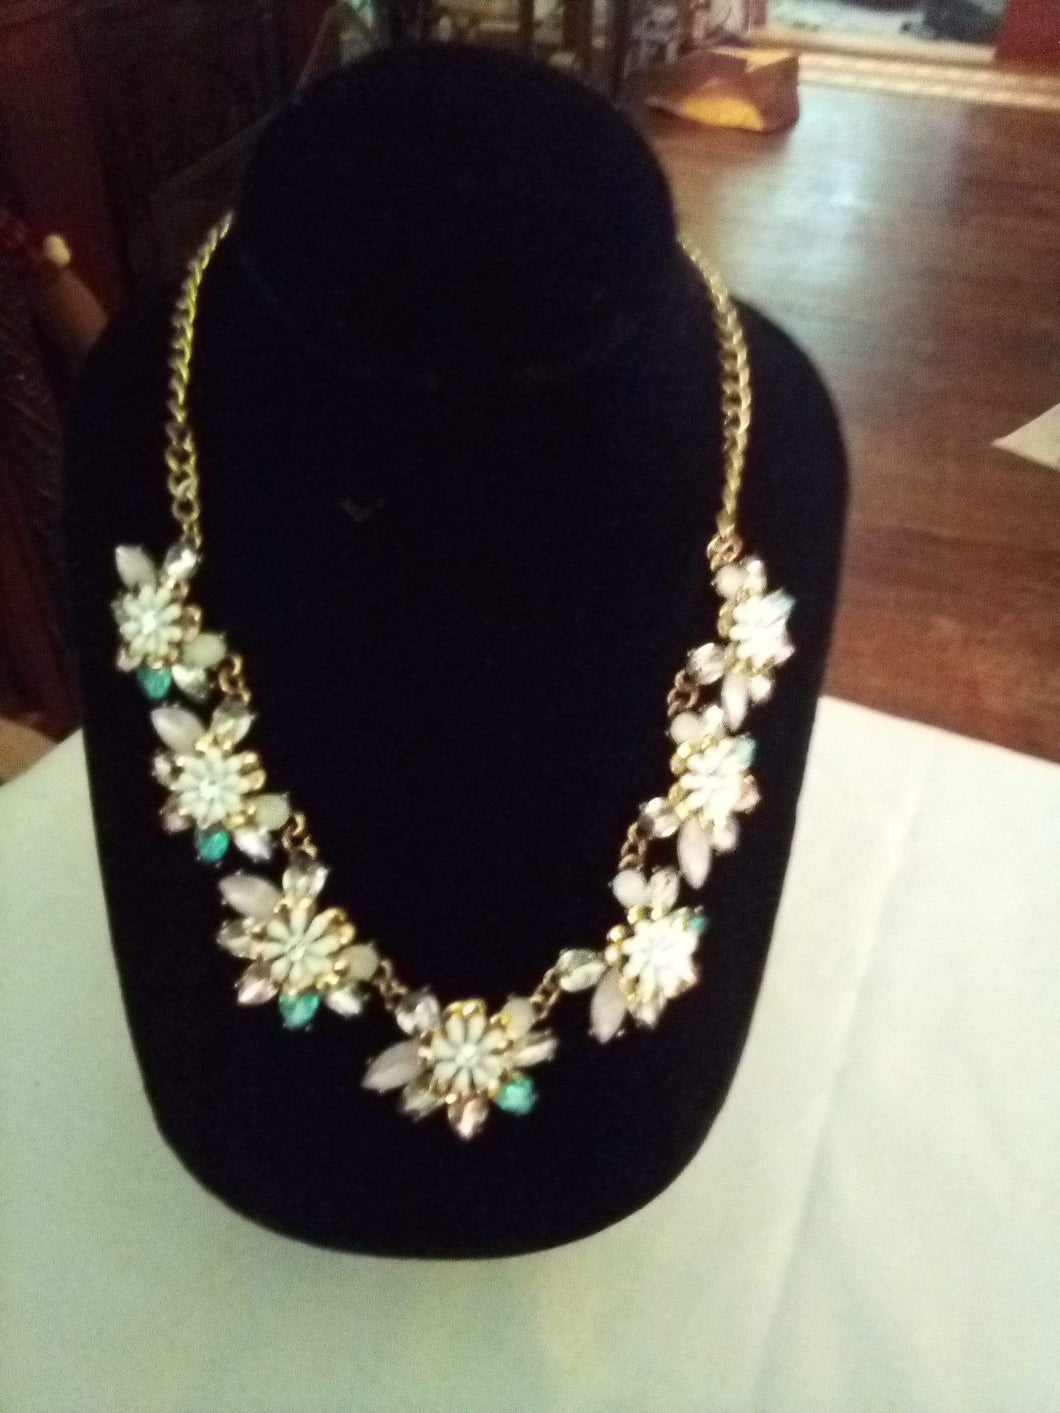 A colorful dressy necklace - B&P'sringsnthings